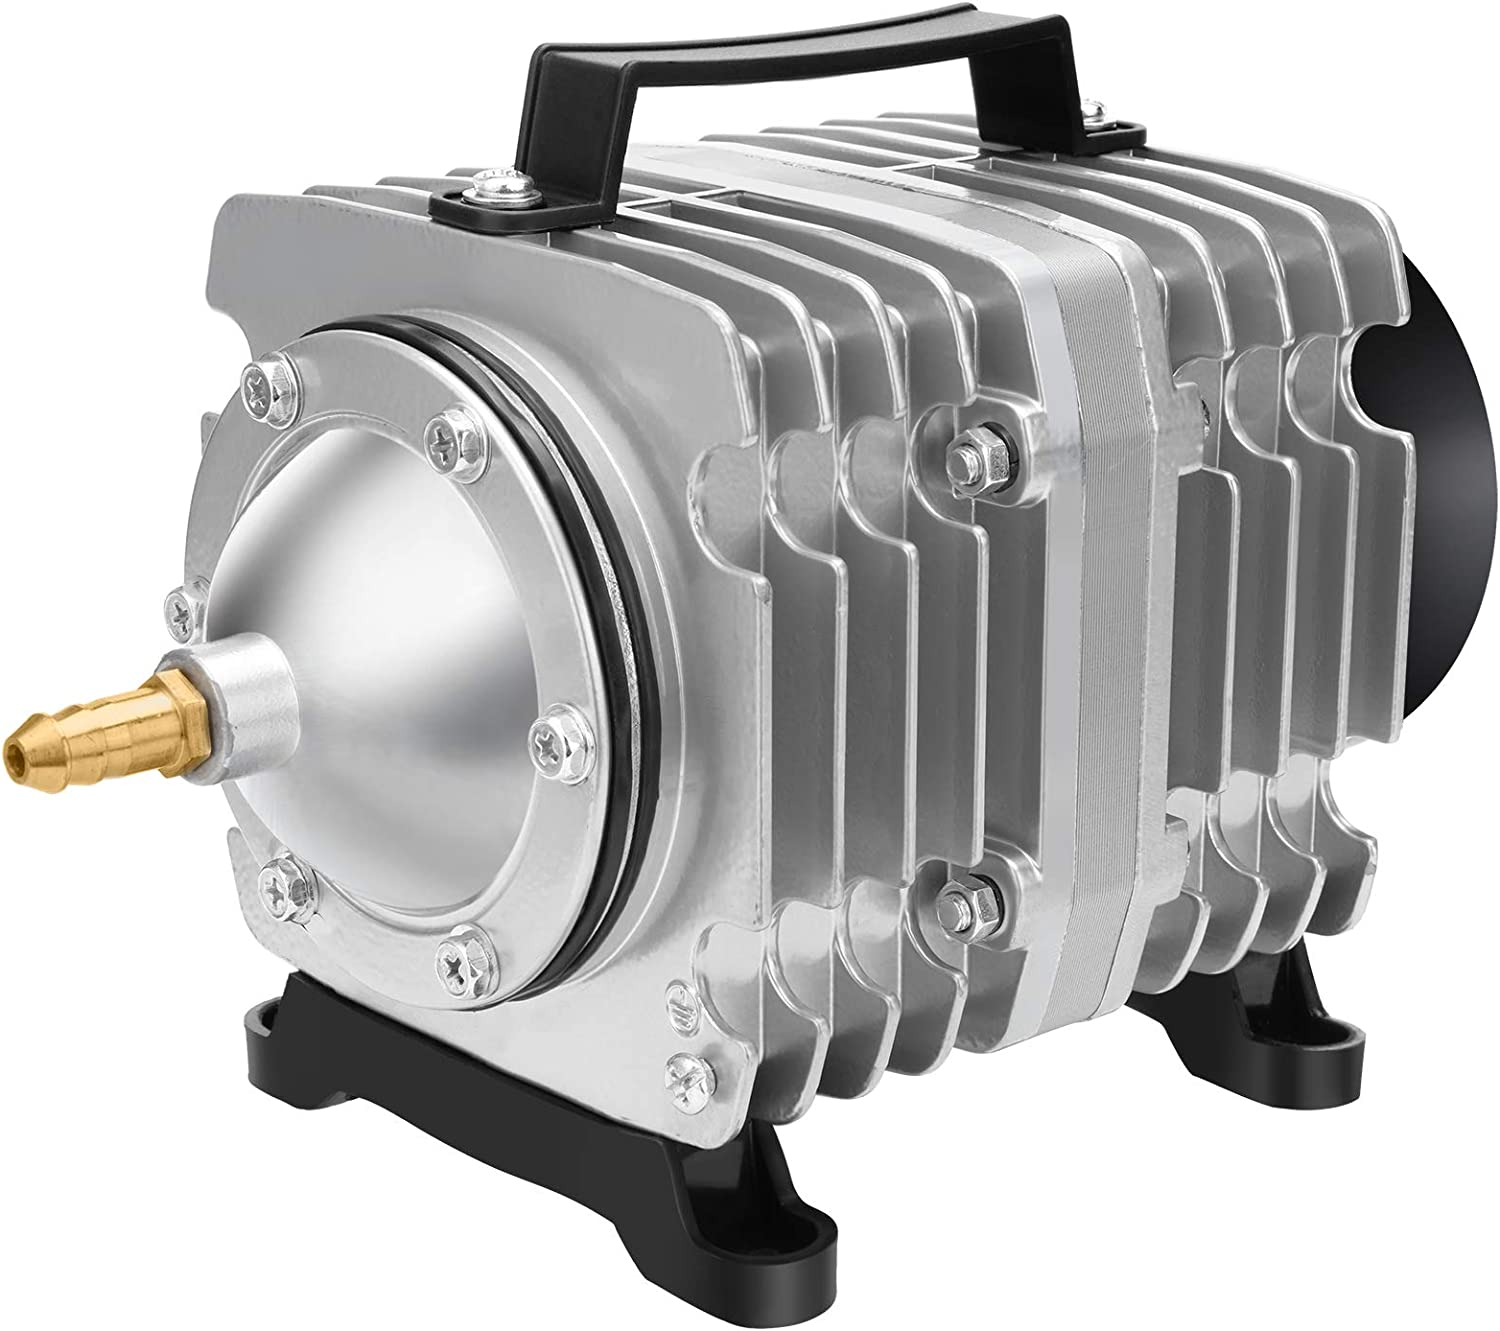 AquaMiracle New life Opening large release sale Commercial Air Pumps 5 Models 1400 175 1200 600 1000